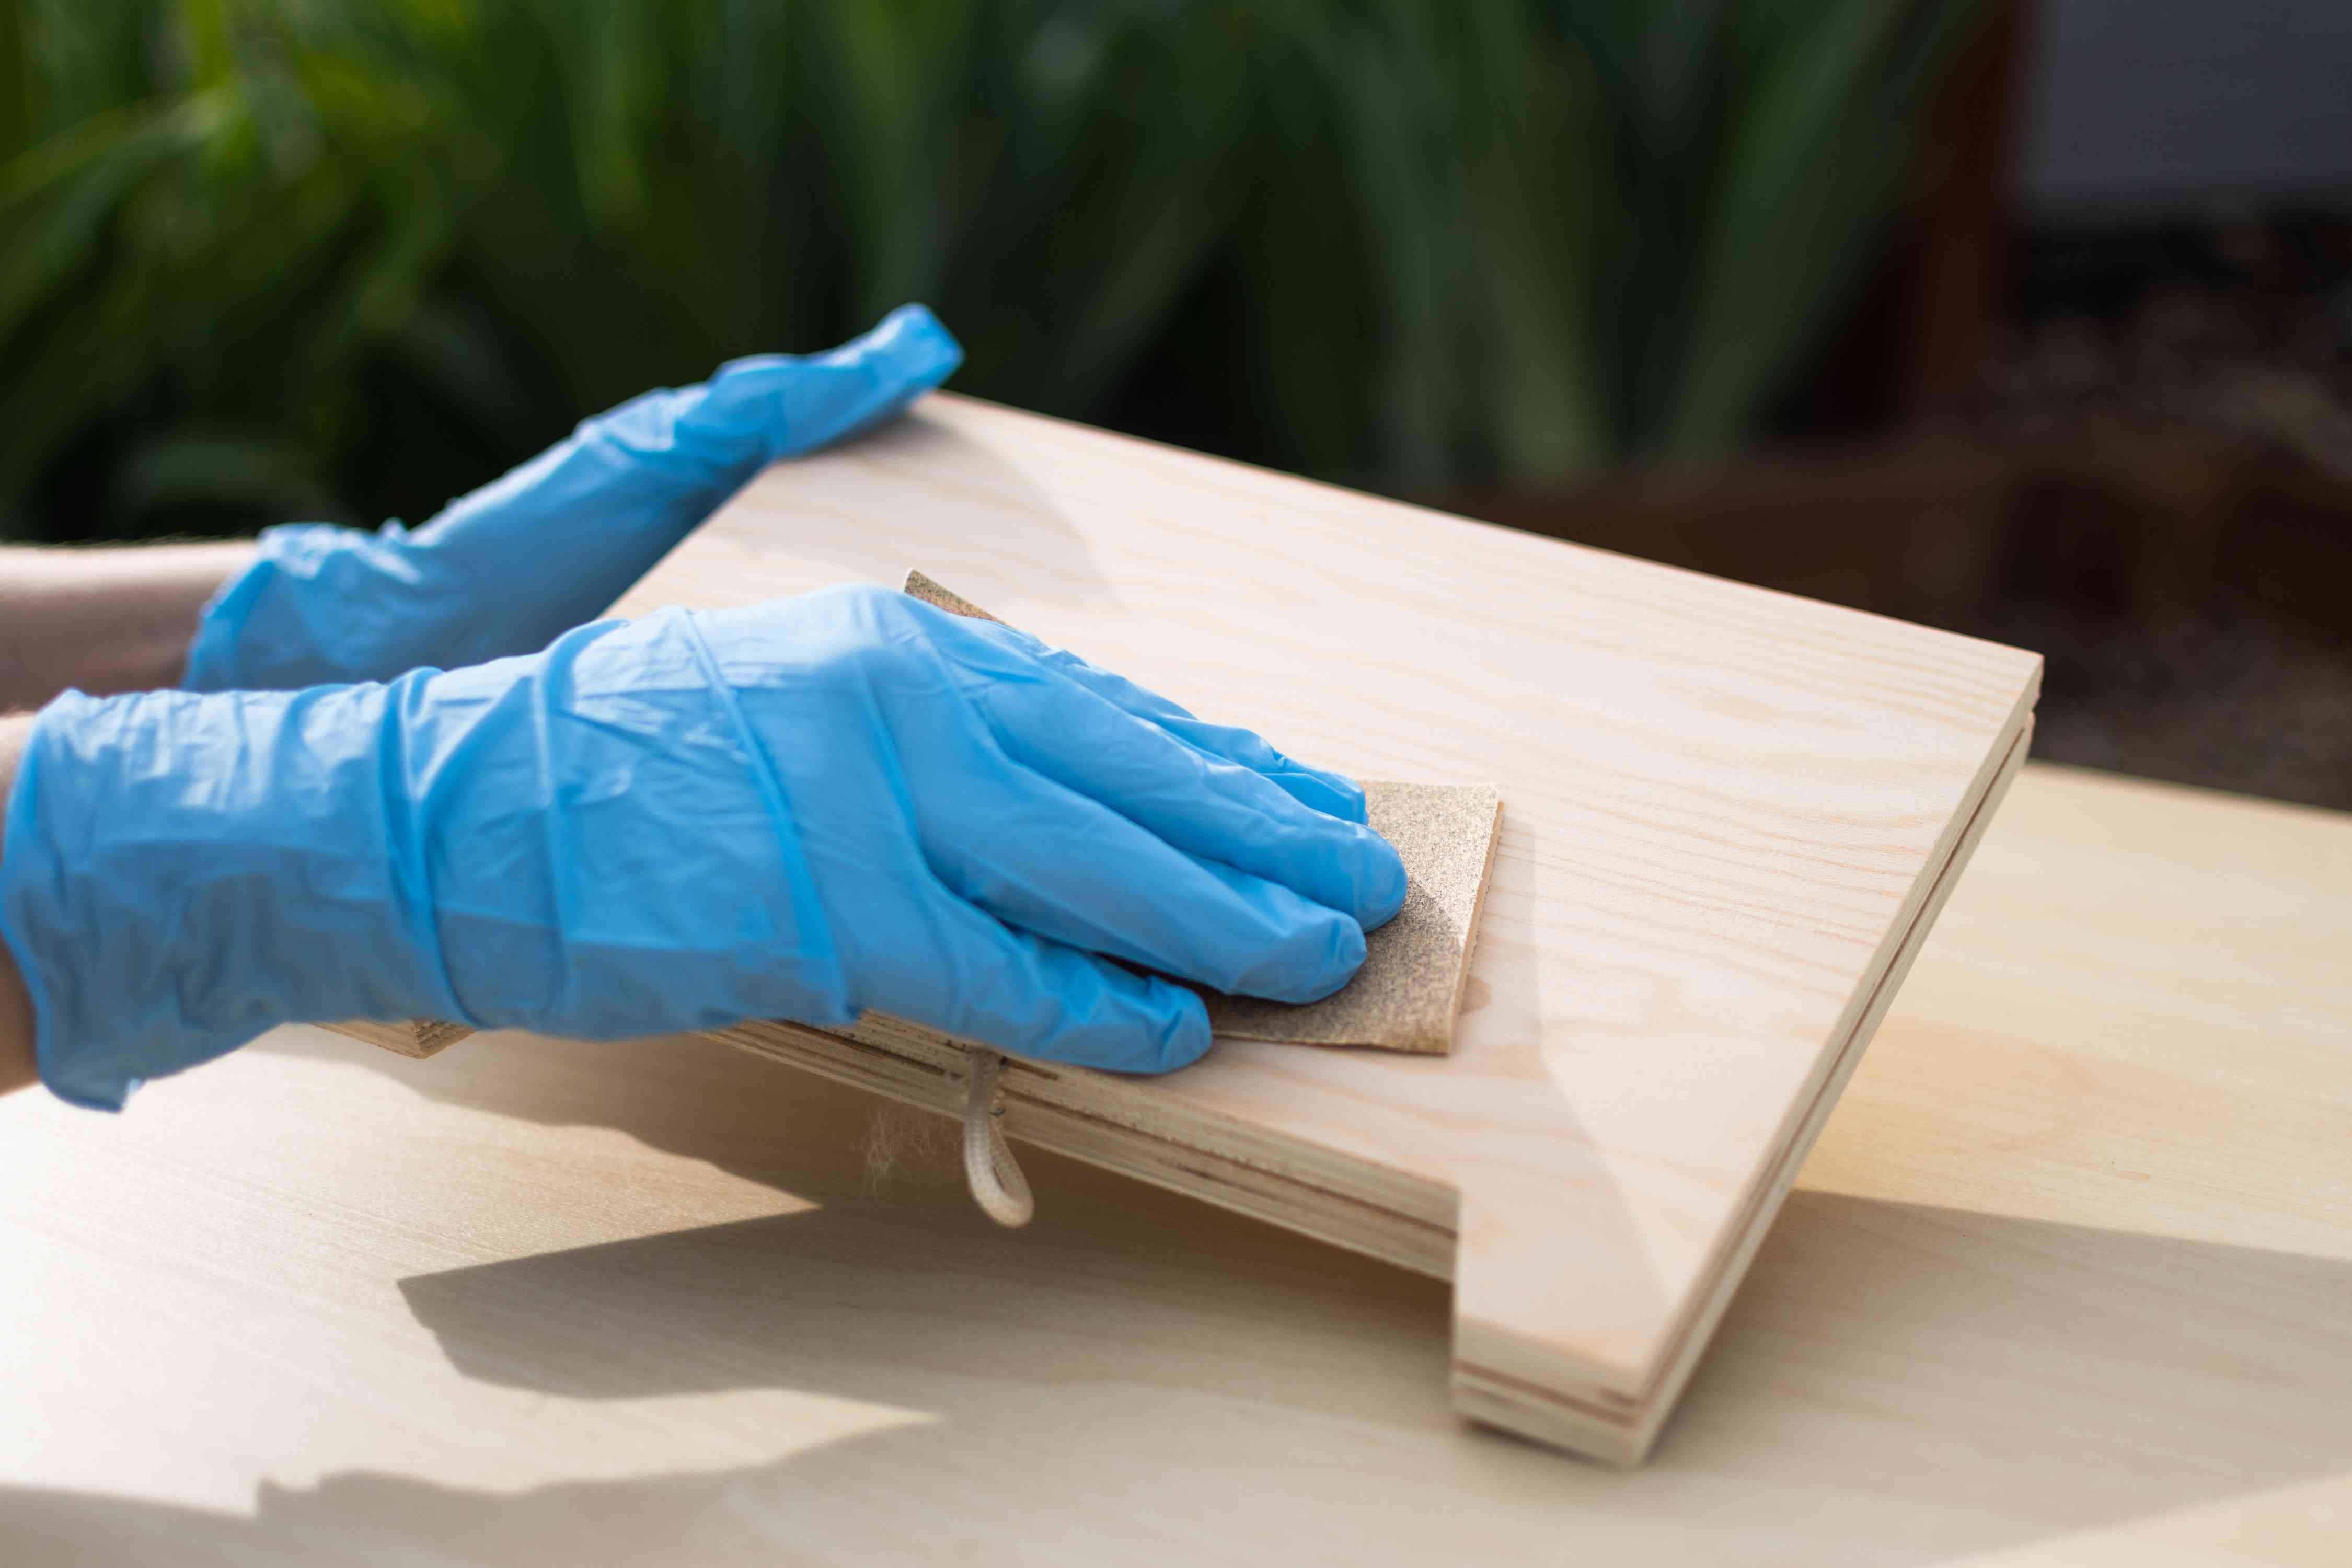 Wooden sign sanded down with fine-grit sandpaper while wearing blue gloves